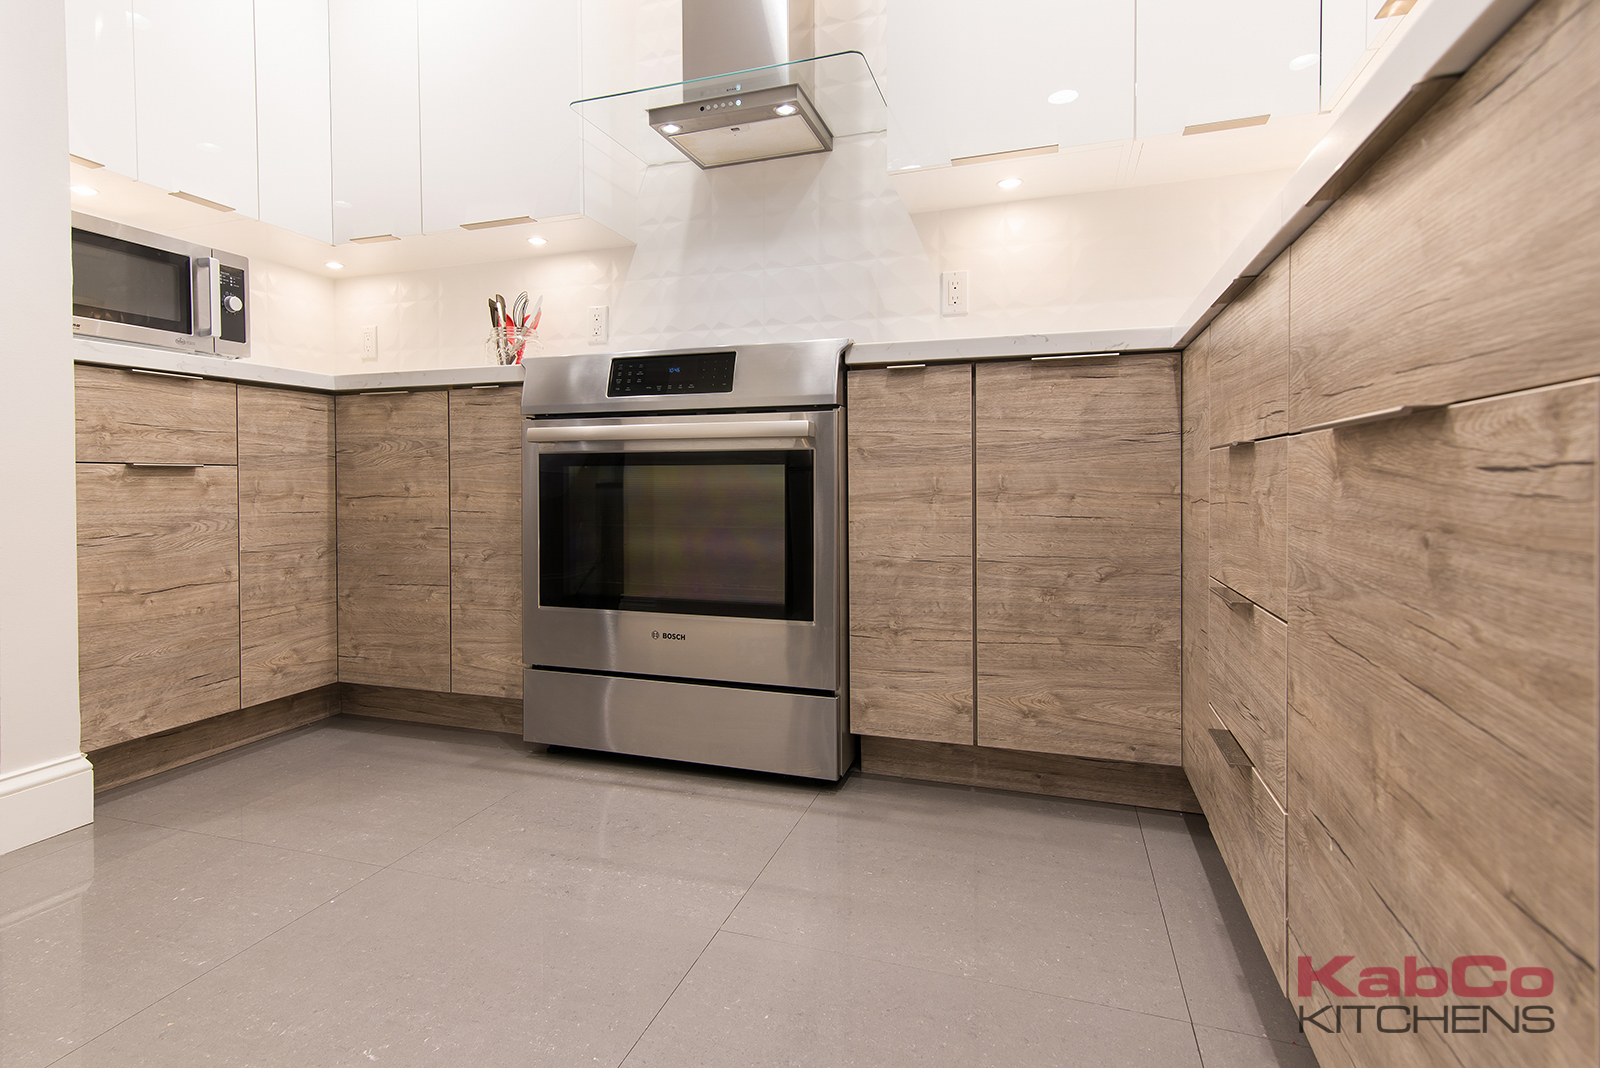 Dove what's so cool about kitchen cabinets? KabCo Kitchens Silverwood Milk Shake Kitchen Cabinet ...